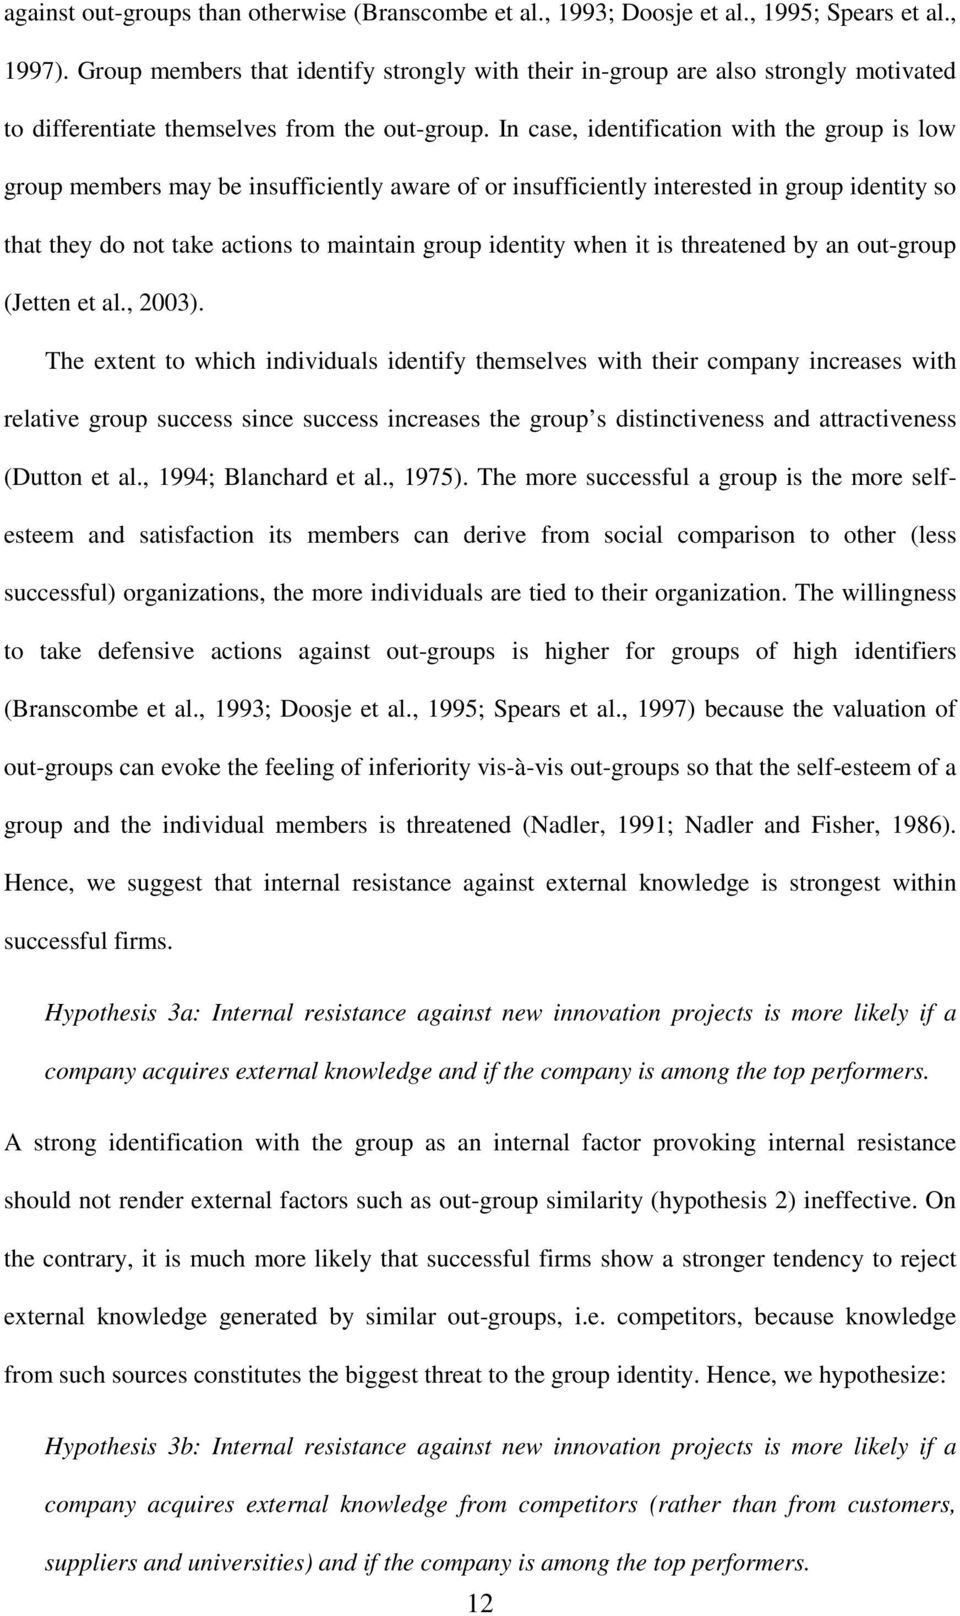 In case, identification with the group is low group members may be insufficiently aware of or insufficiently interested in group identity so that they do not take actions to maintain group identity